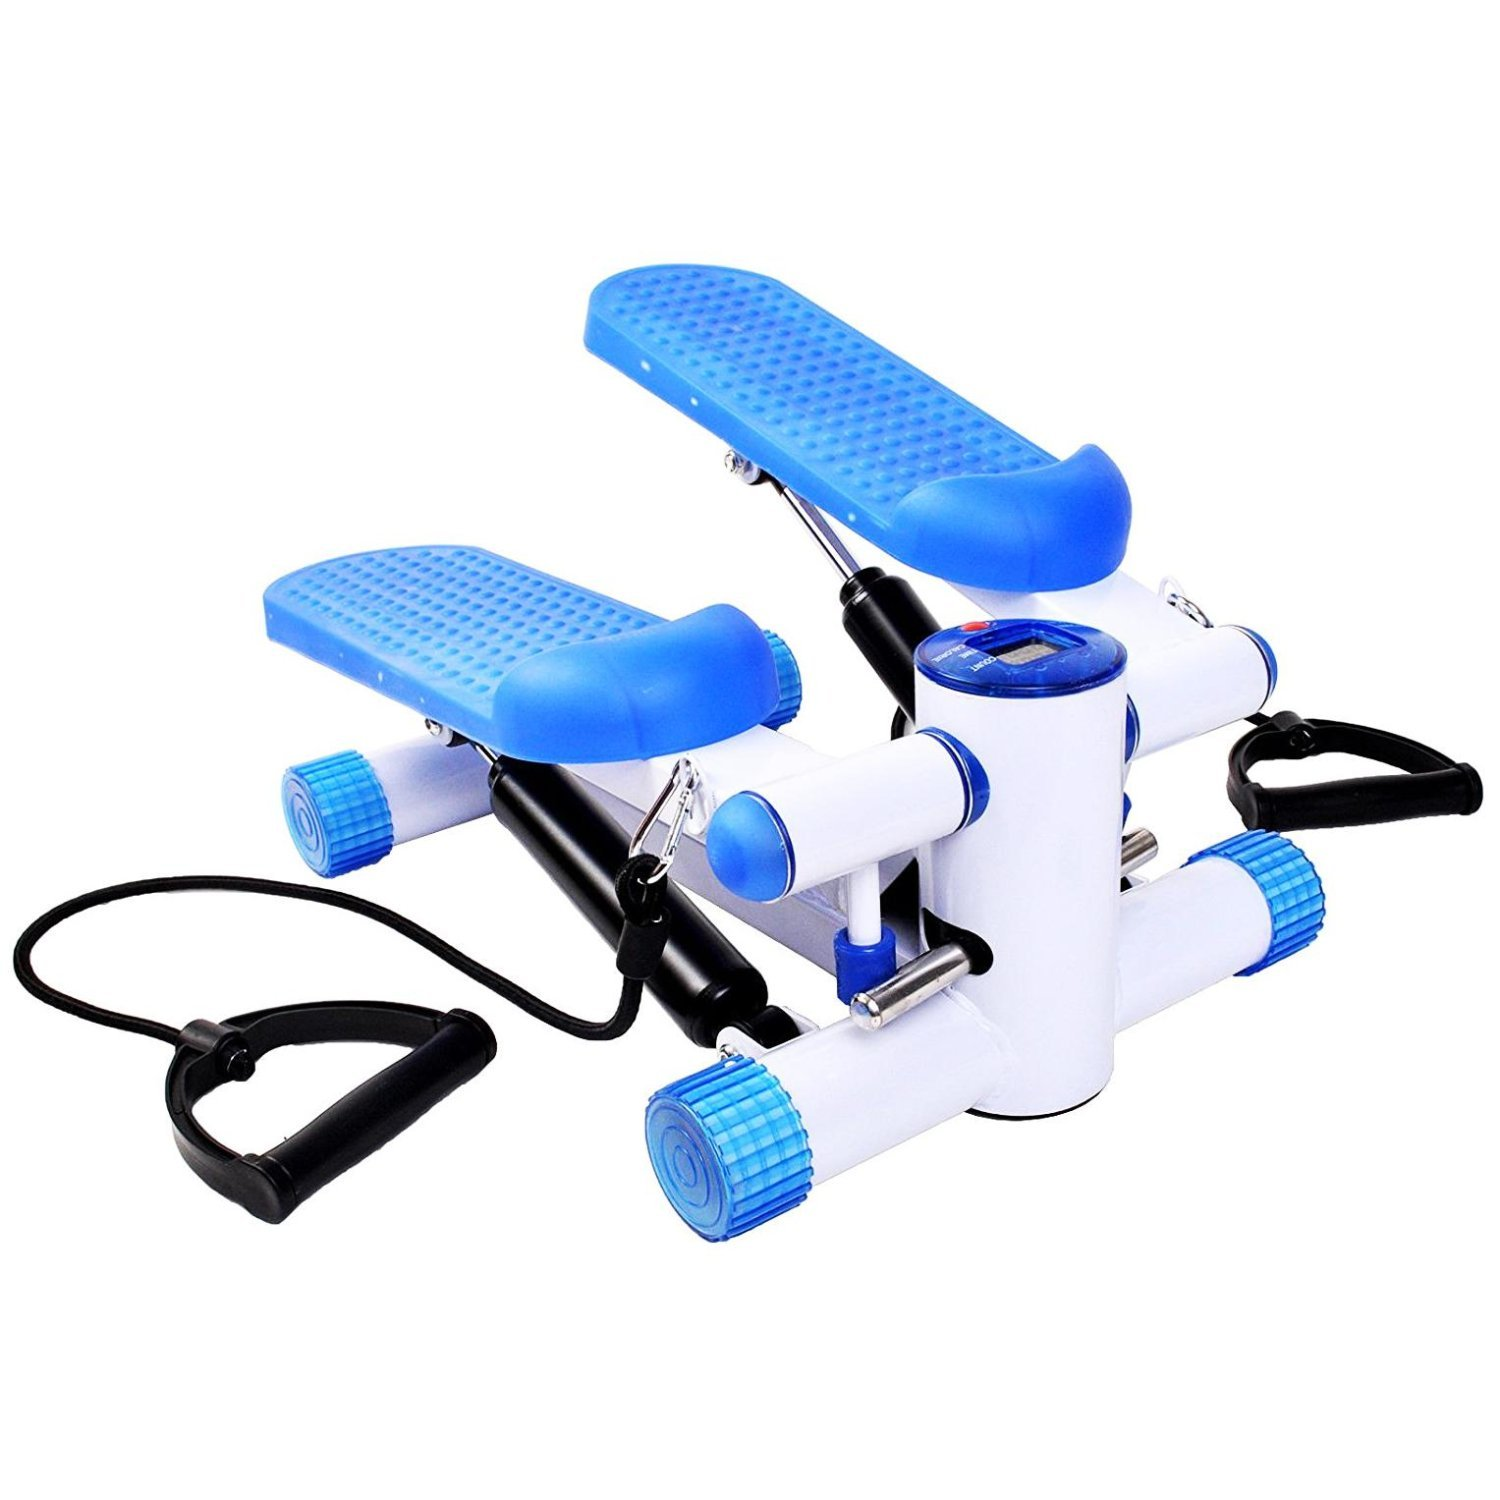 Home Exercise Equipment Stepper: NEW! Adjustable Exercise Aerobic Stepper Trainer Workout